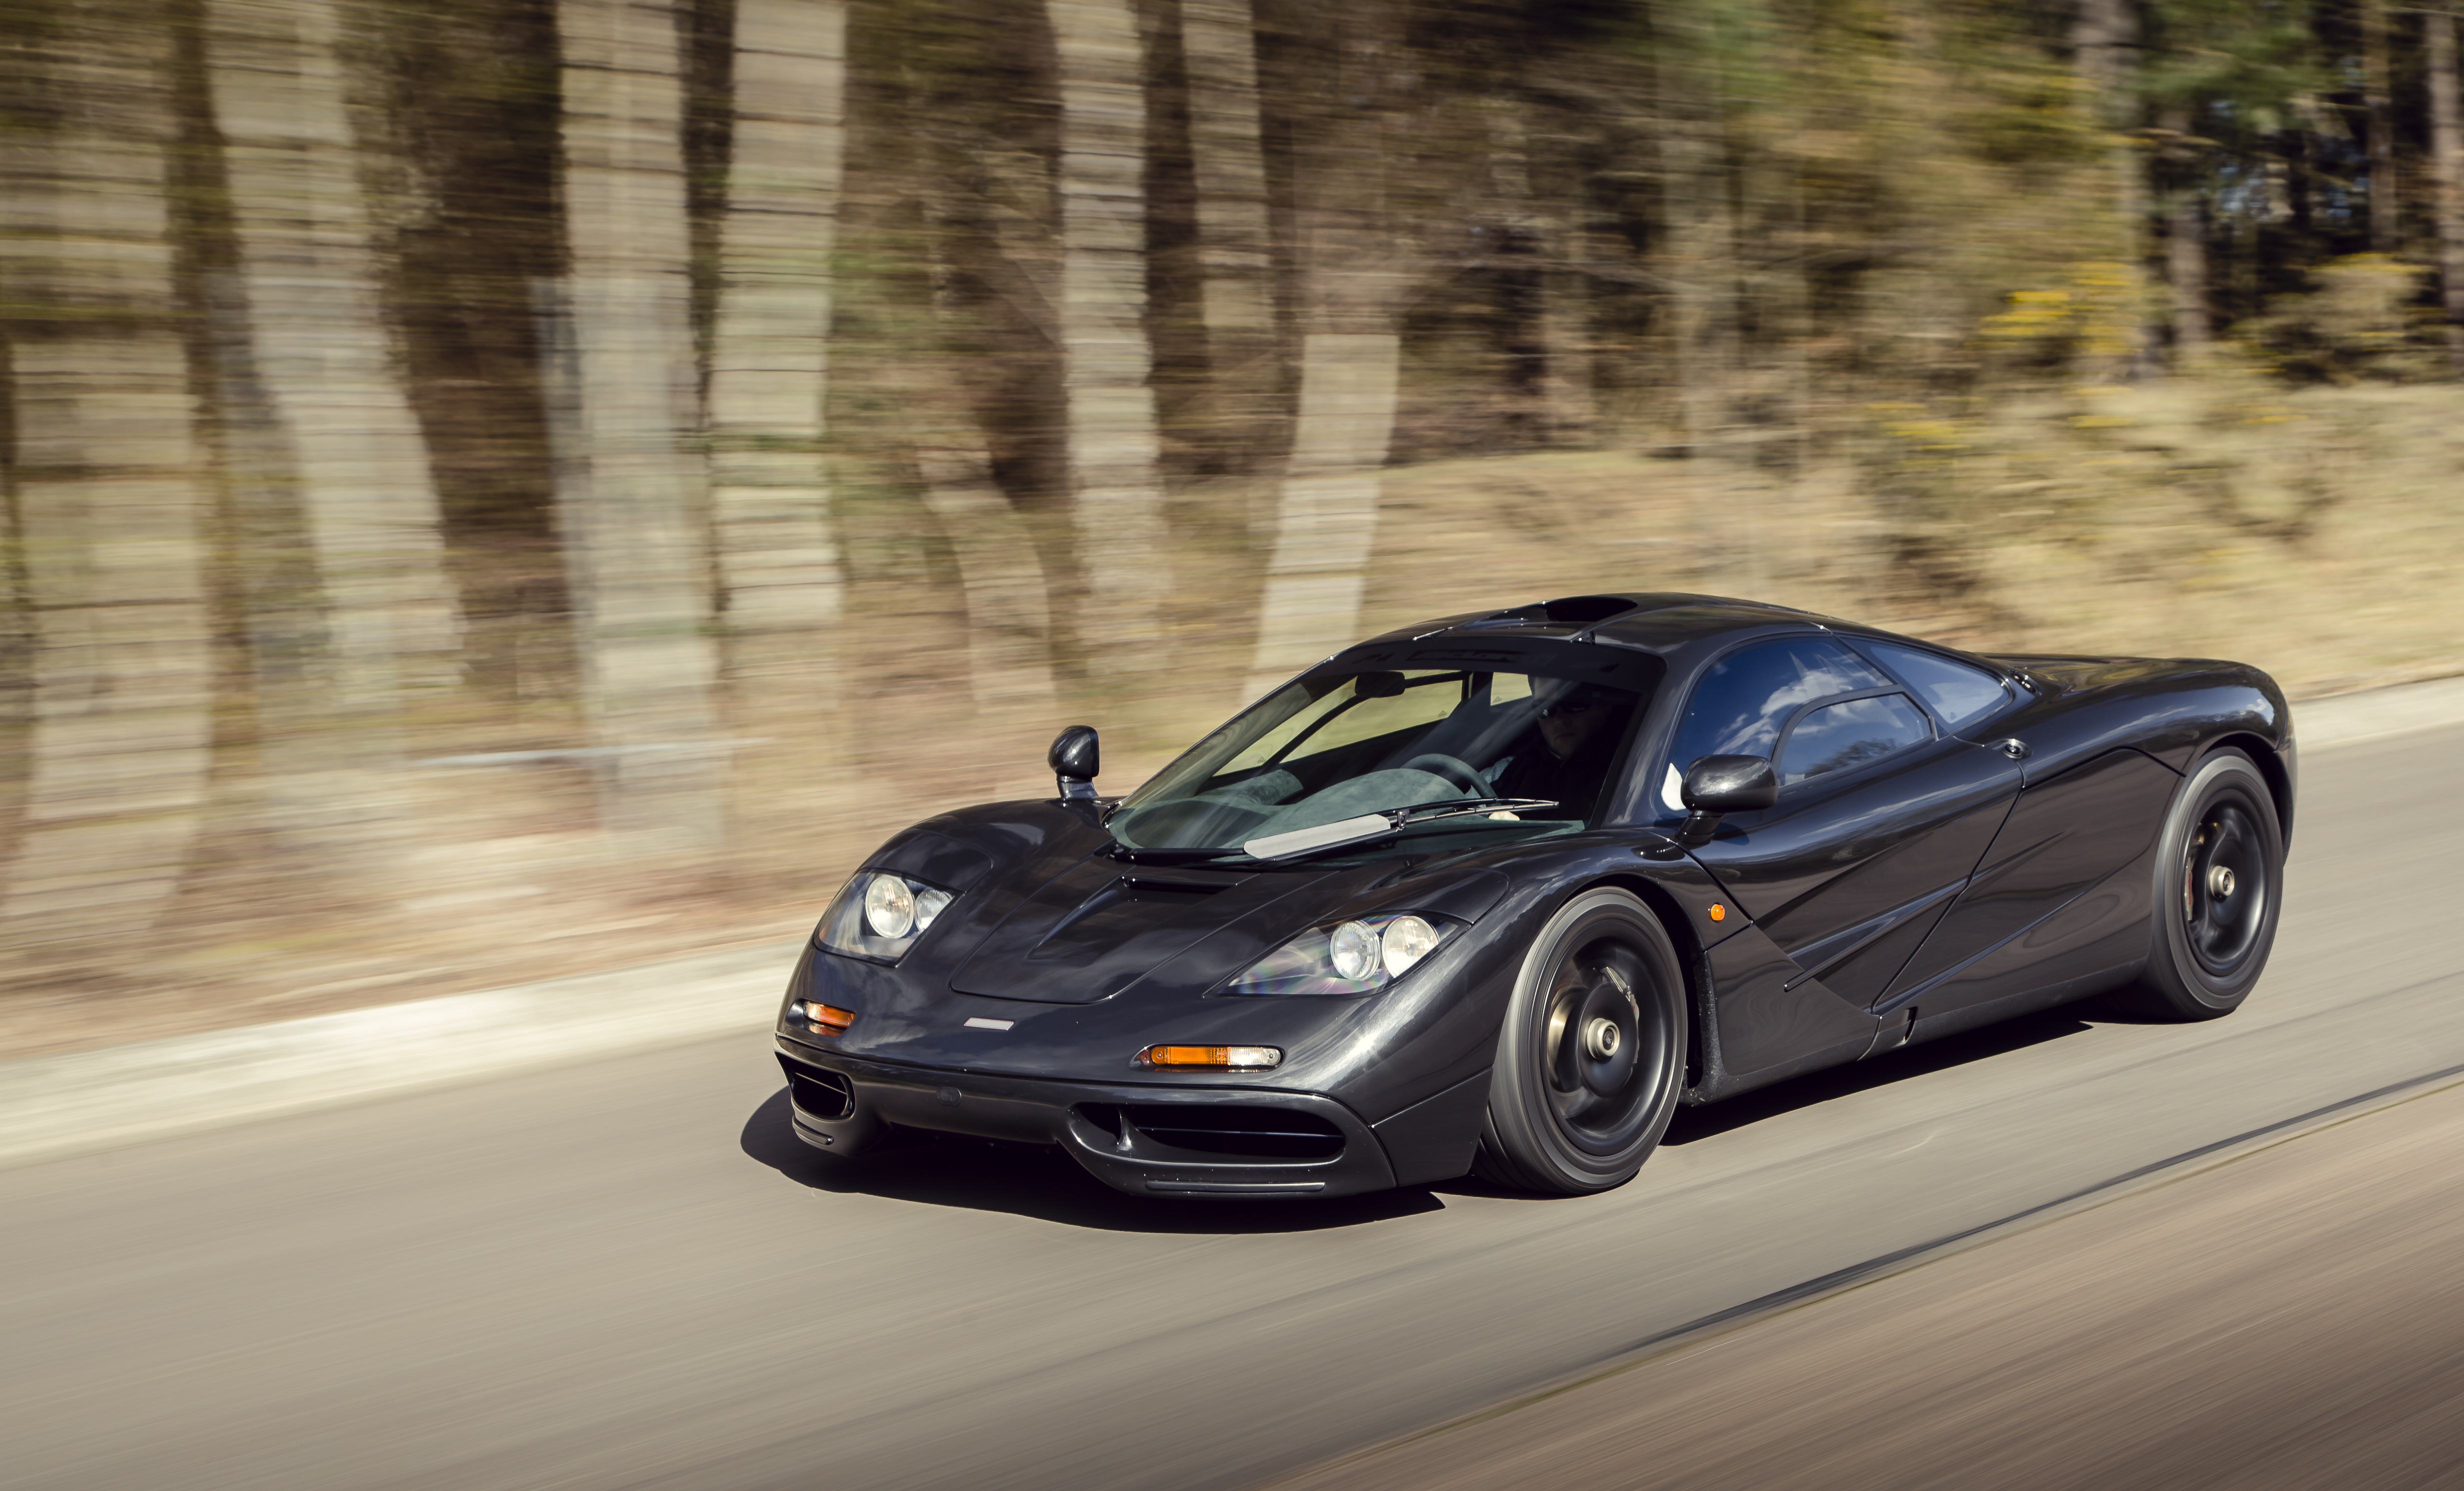 mclaren f1 ownership doesn't come cheap: video picture. | top speed